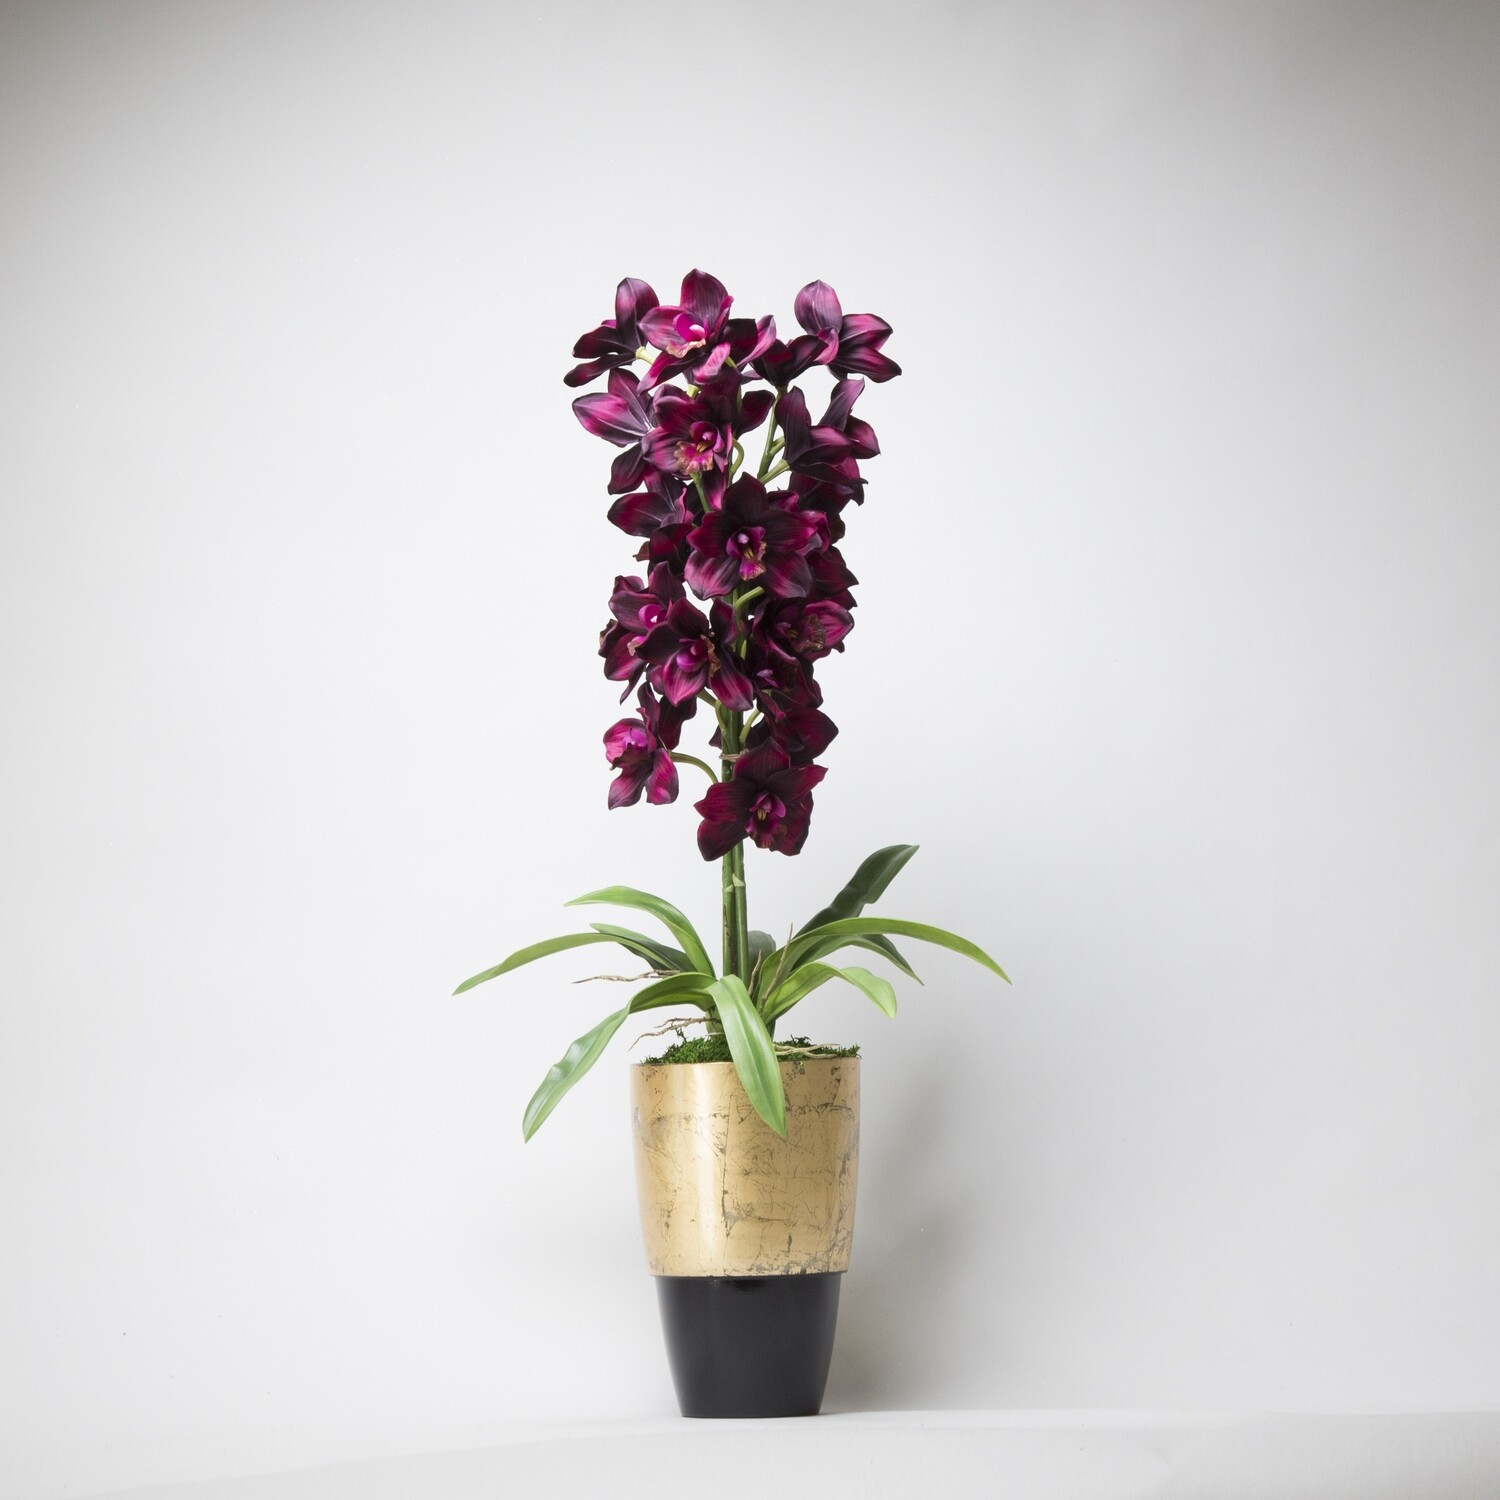 Tall Cymbidiums in a Golden and Black Vase